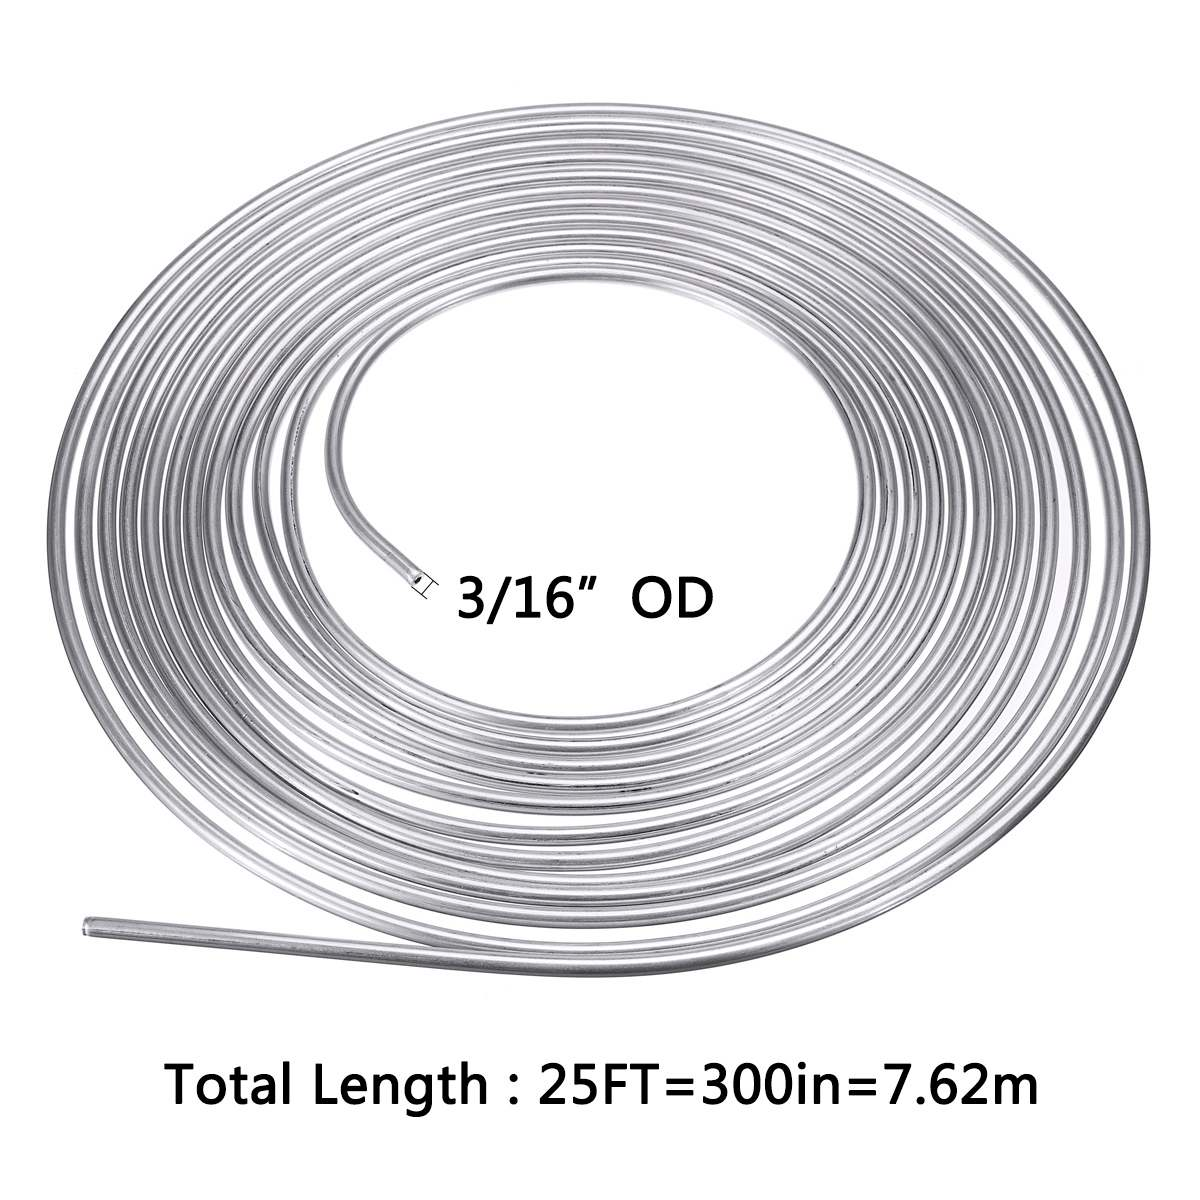 "25ft 7.62m Roll Tube Coil of 3/16"" OD Copper Nickel Brake Pipe Hose Line Piping Tube Tubing Silver Zinc"